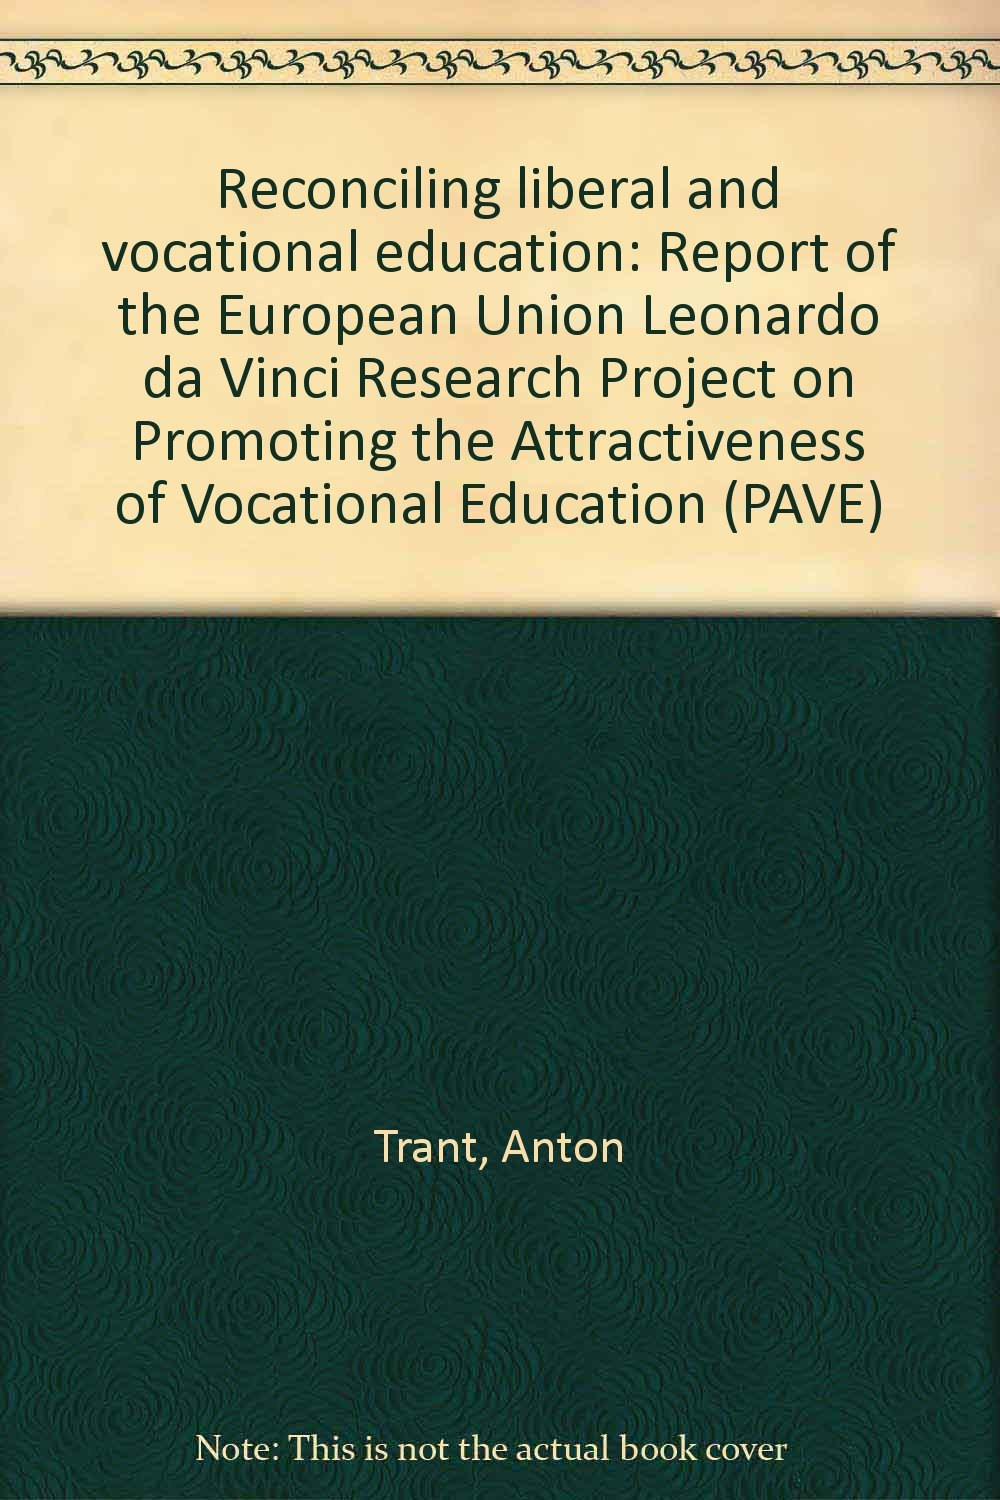 reconciling liberal and vocational education report of the european union leonardo da vinci research project on promoting the attractiveness of vocational education pave